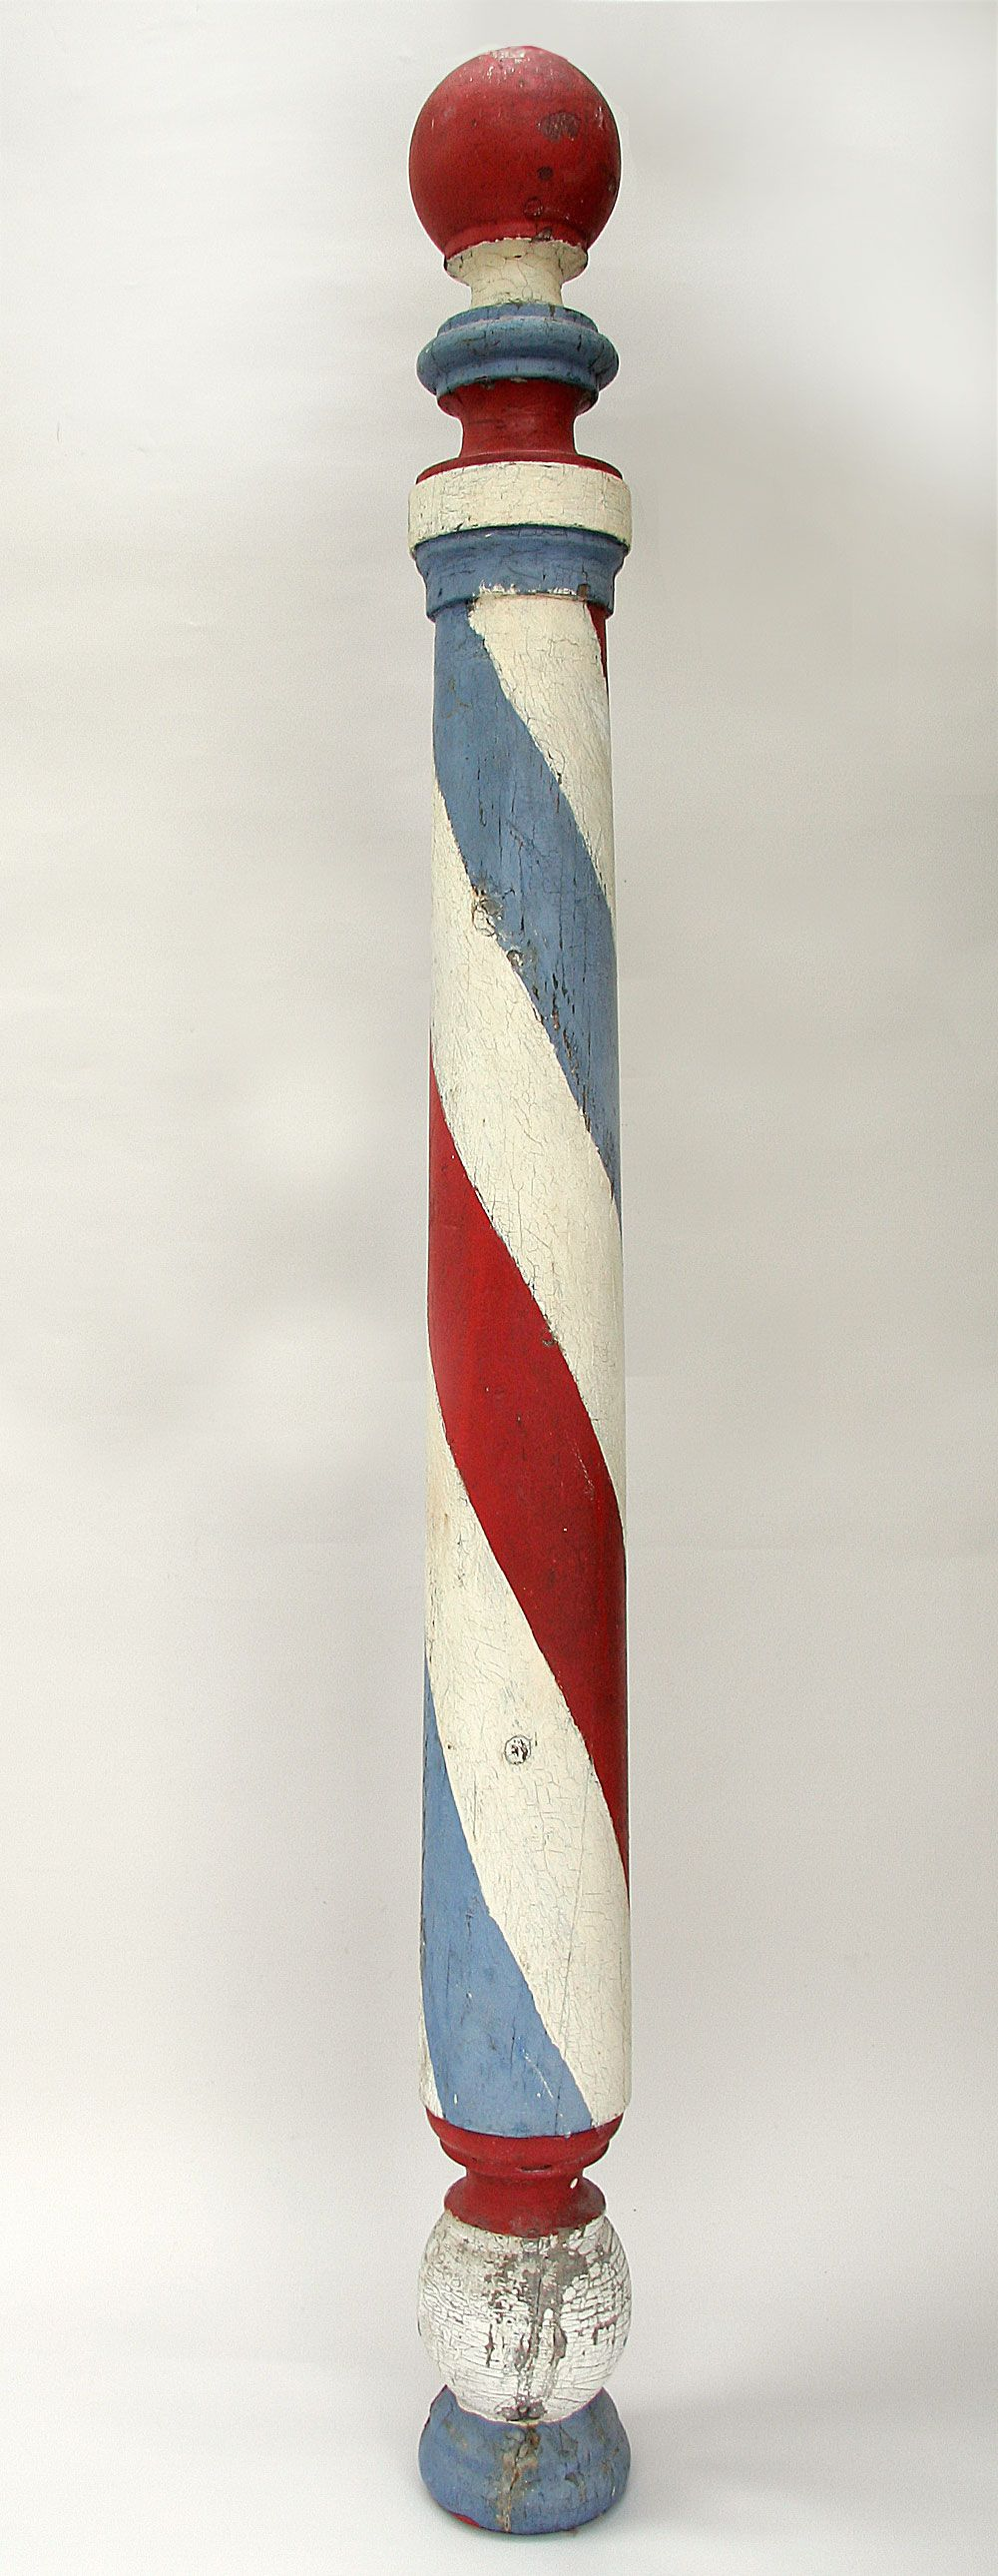 Antique barber shop sign - Antique Painted Americana Wooden Barber Pole Trade Sign Yes I Know It S Not Air Mail